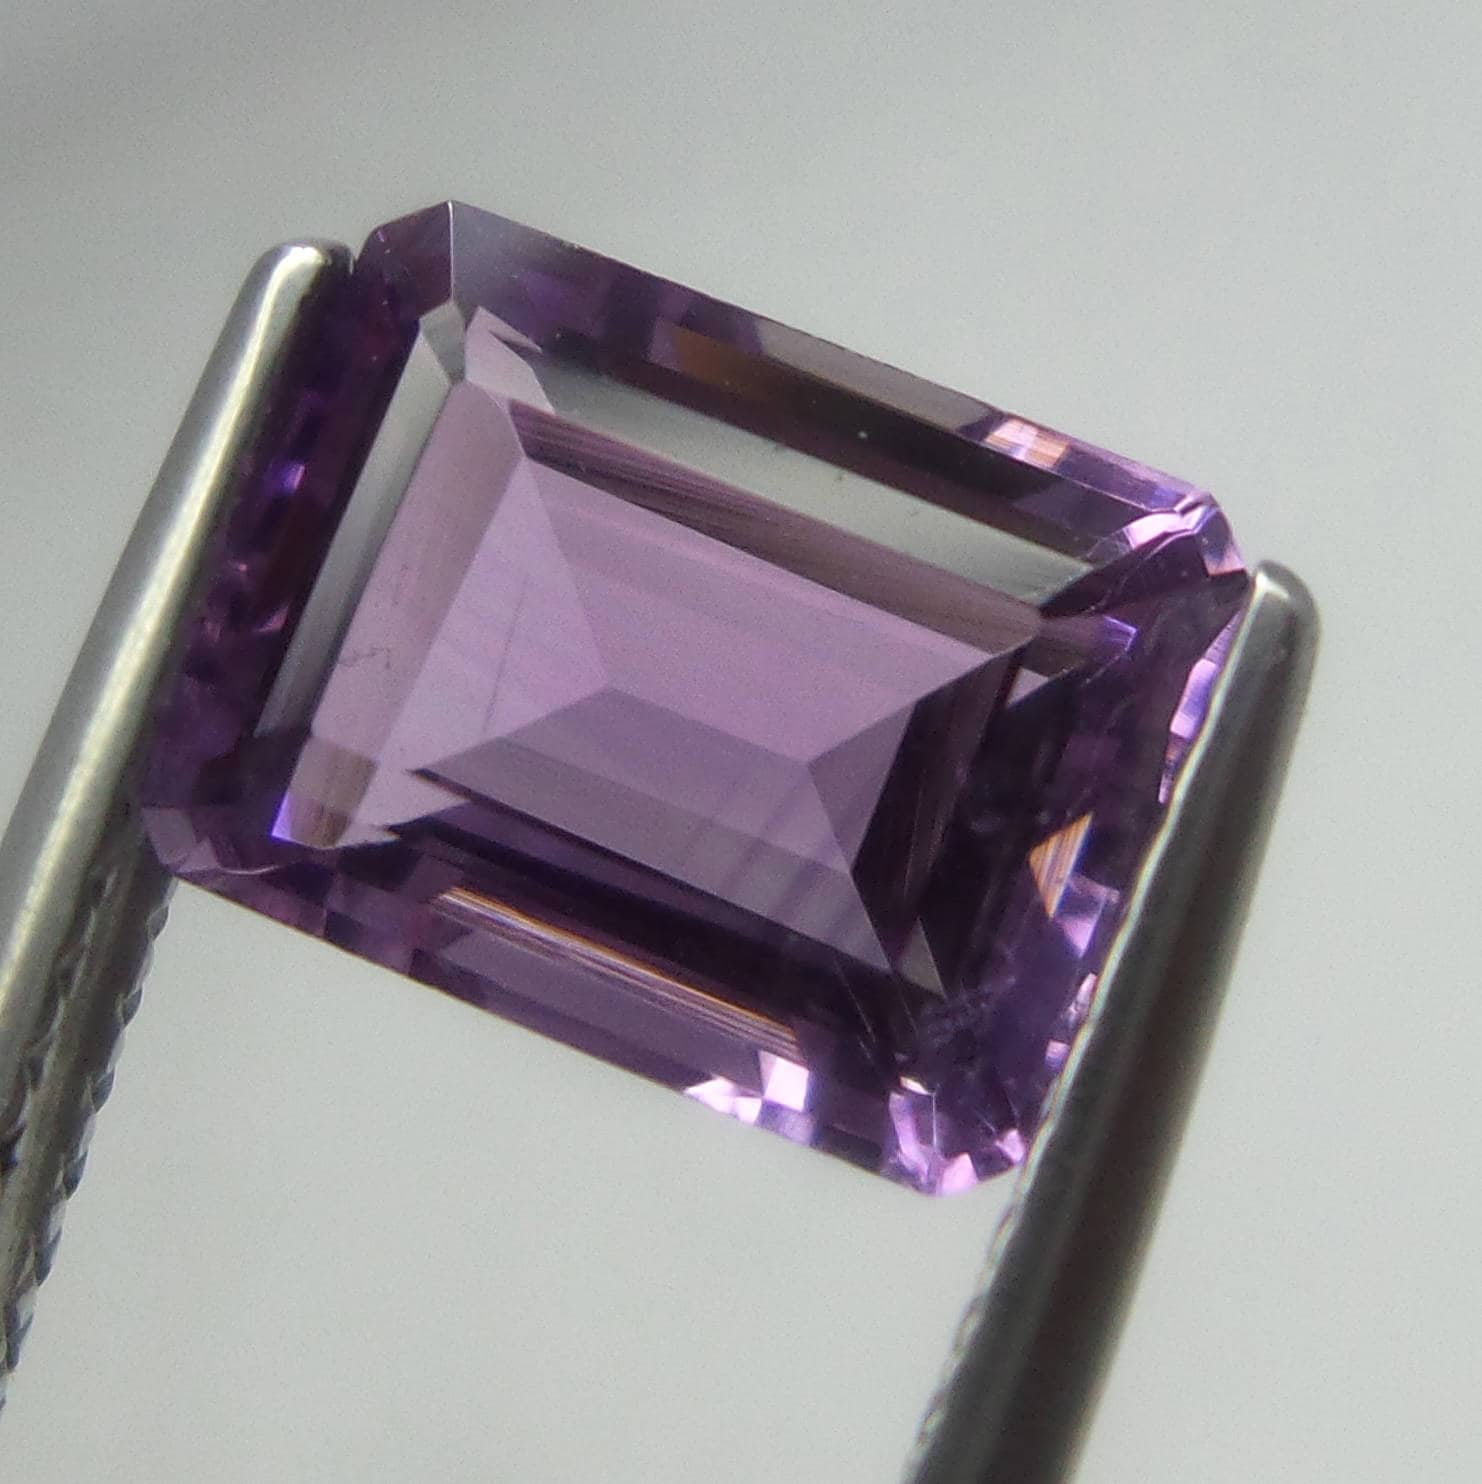 have gems gemstone gem watch can you in amethyst rich saturated stones color purple